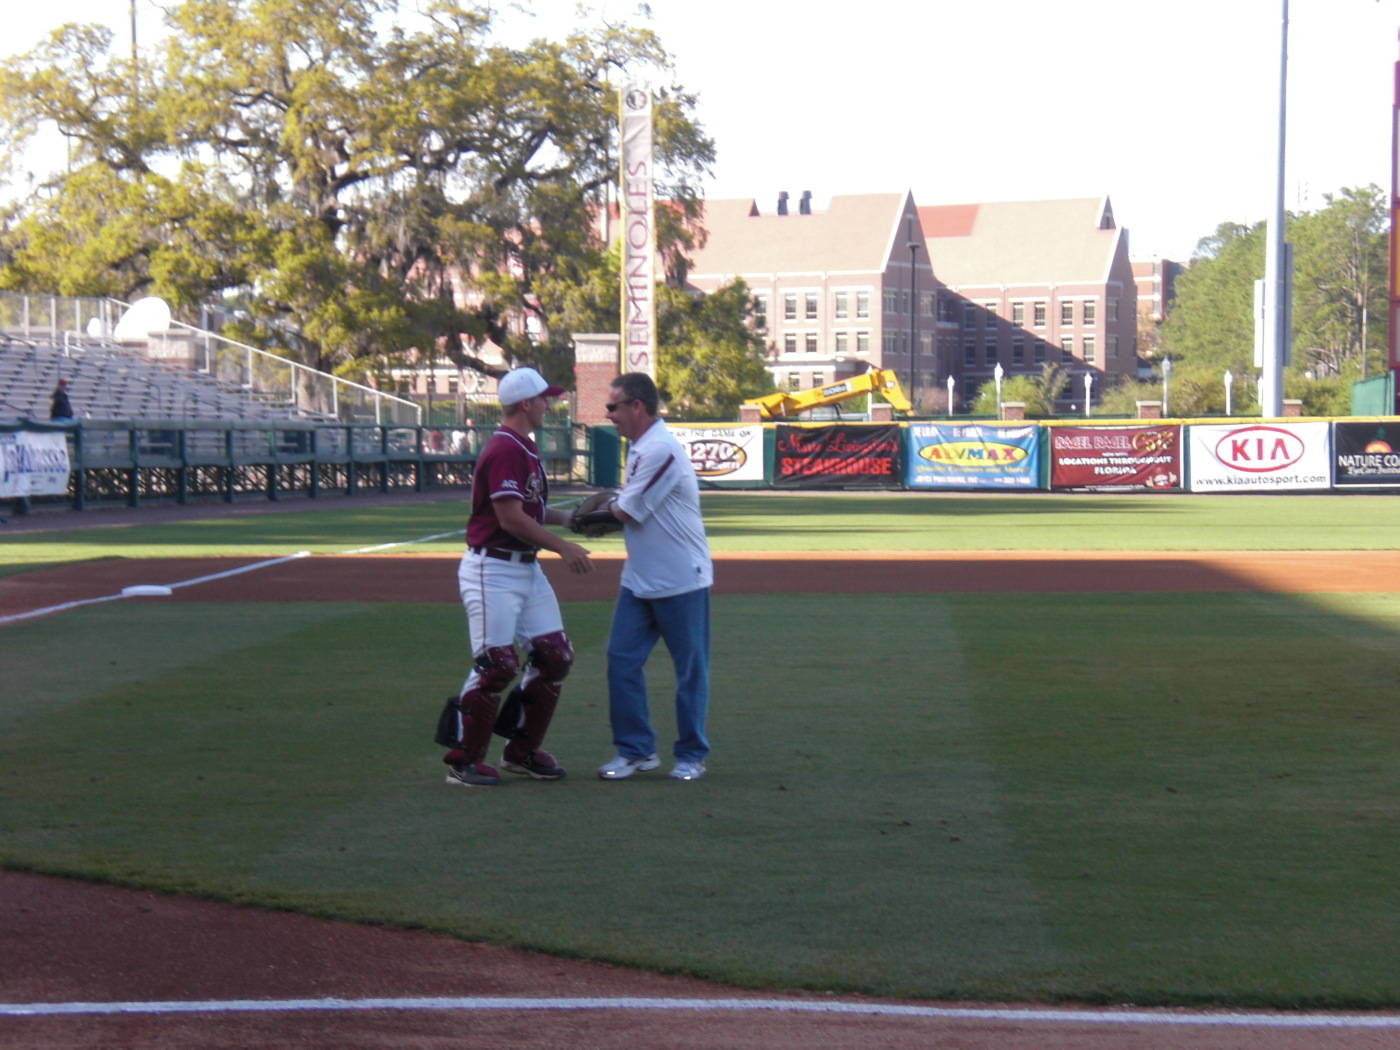 Coach Braman's First Pitch Experience